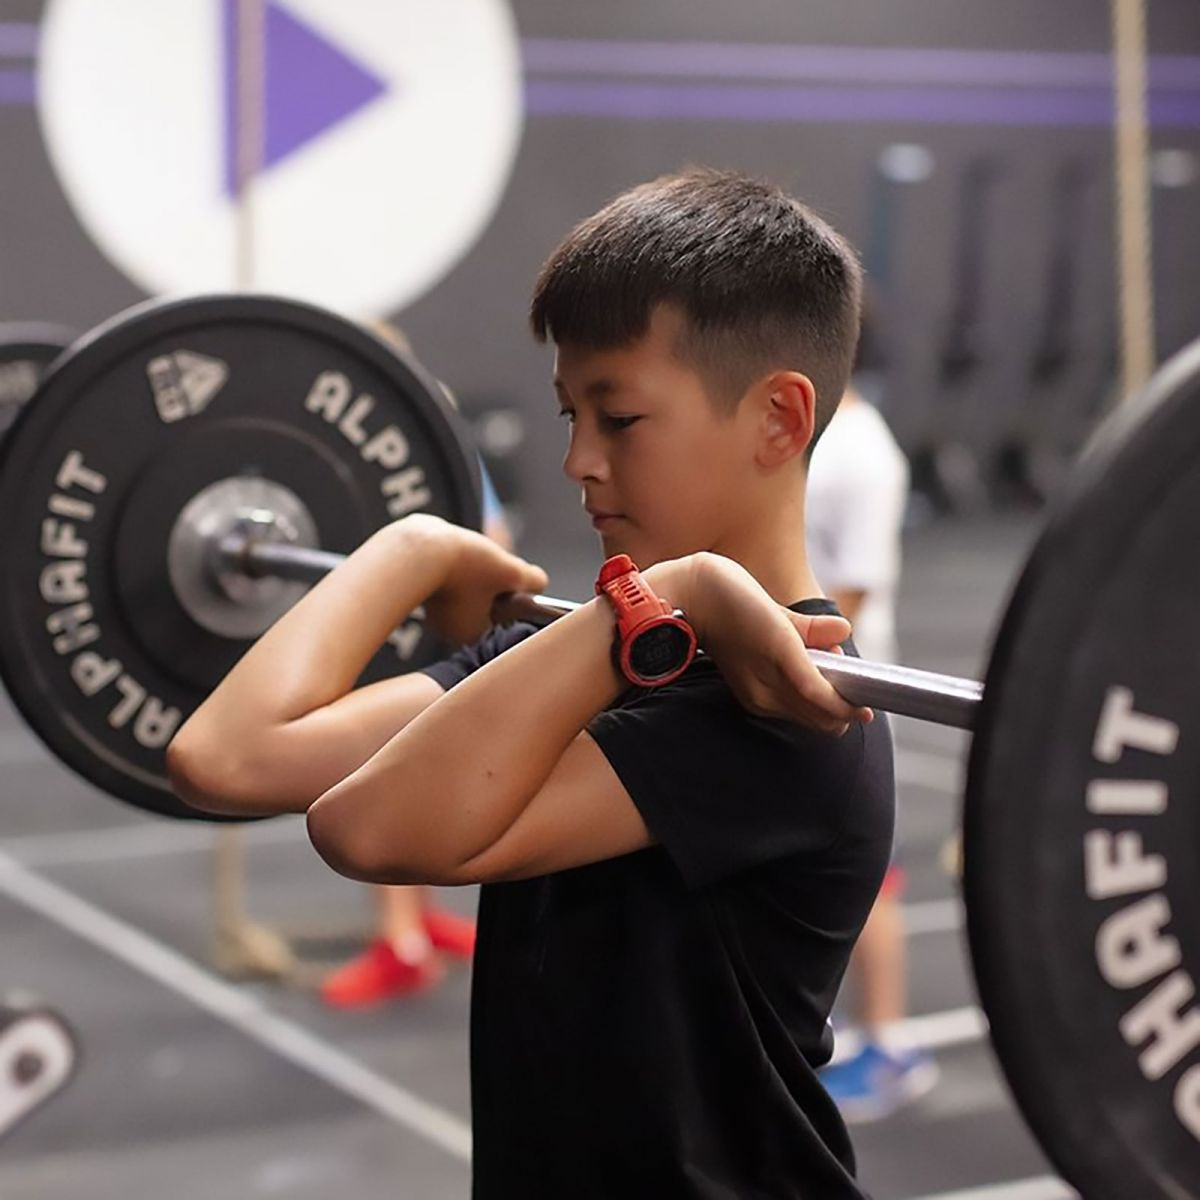 Technique Barbell - CrossFit Play Sydney. Photography by Adrian Fowler